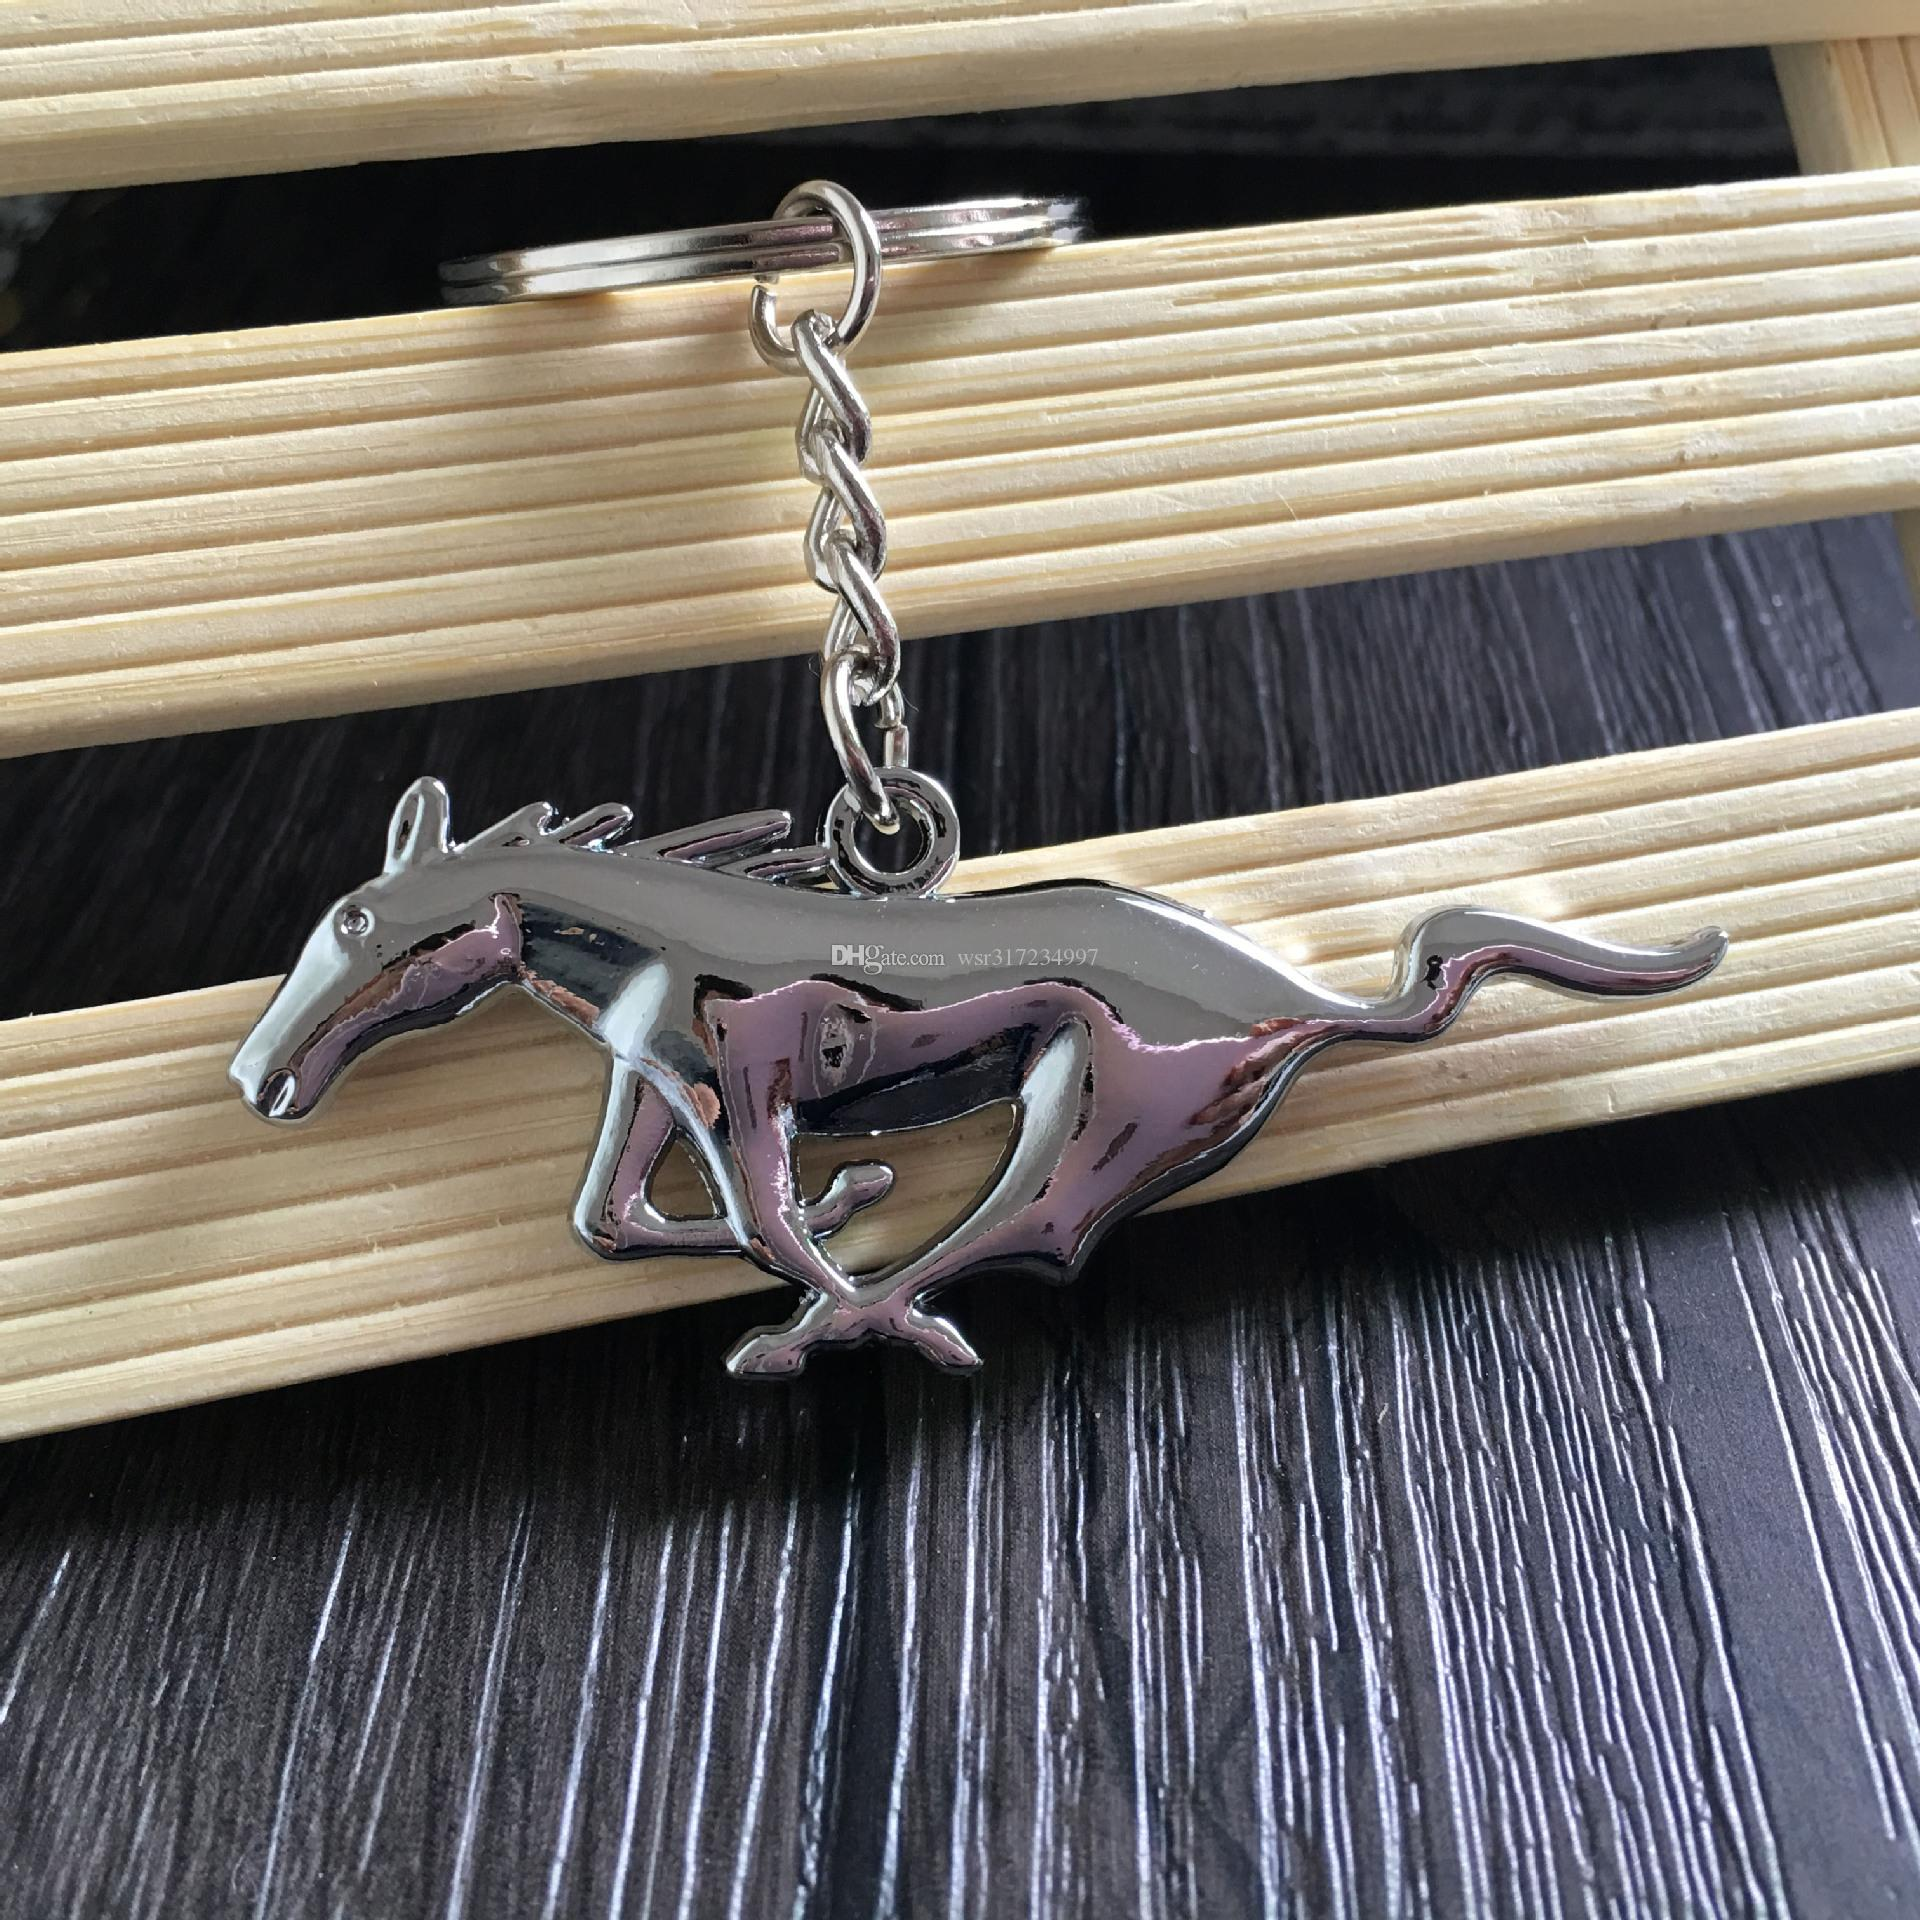 3D Fashion keyring for Ford Mustang Logo Keychain personality Logo Pendant car Mustang logo emblem key chain 4S shop sales promotion gift